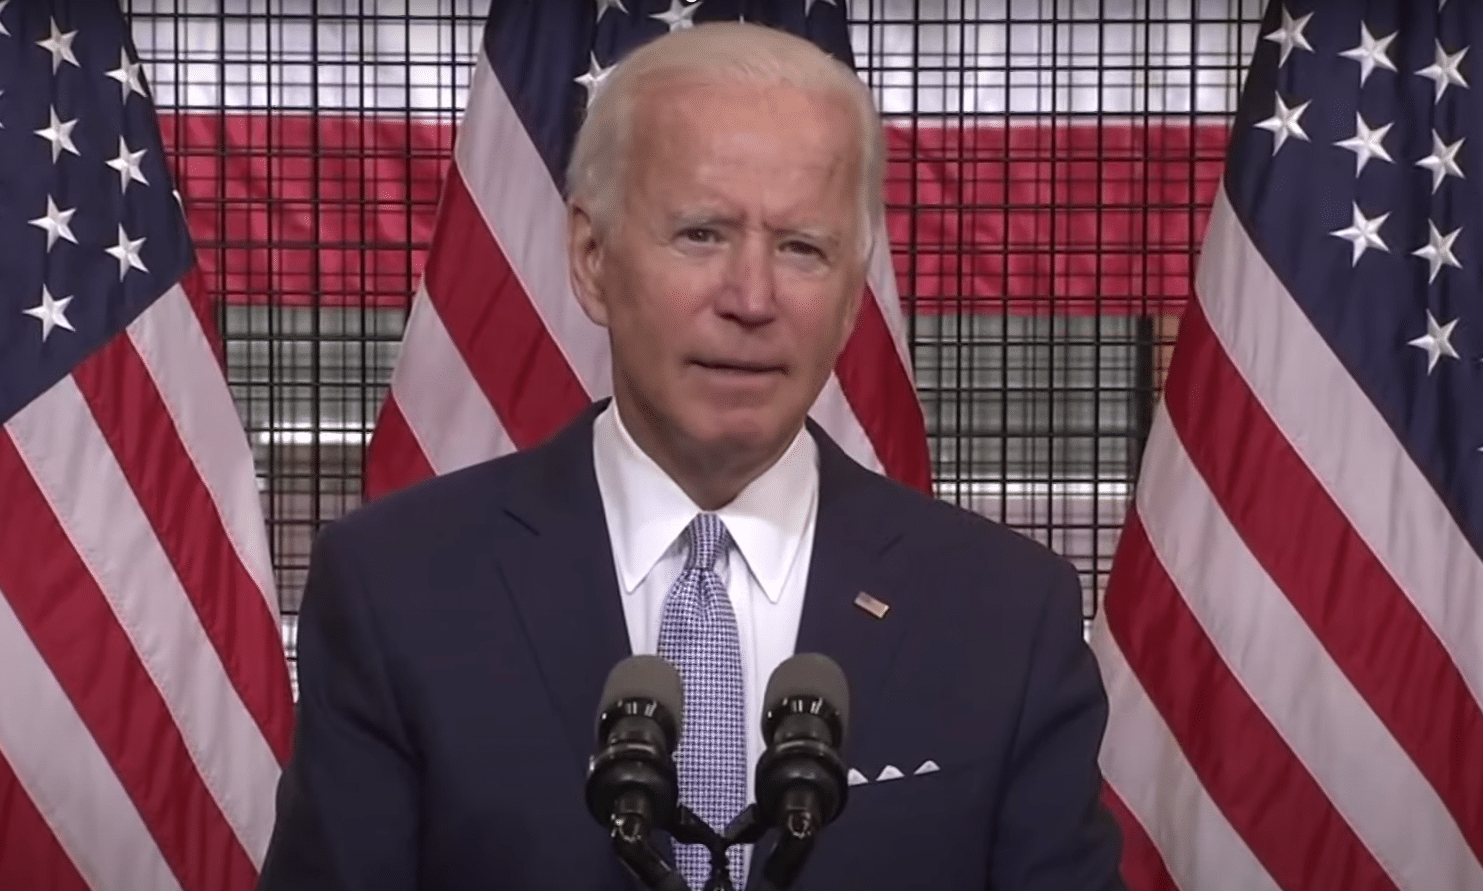 Report: On day 1, Biden plans rejoin WHO, Paris climate accord, restart DACA and end 'muslim bans'